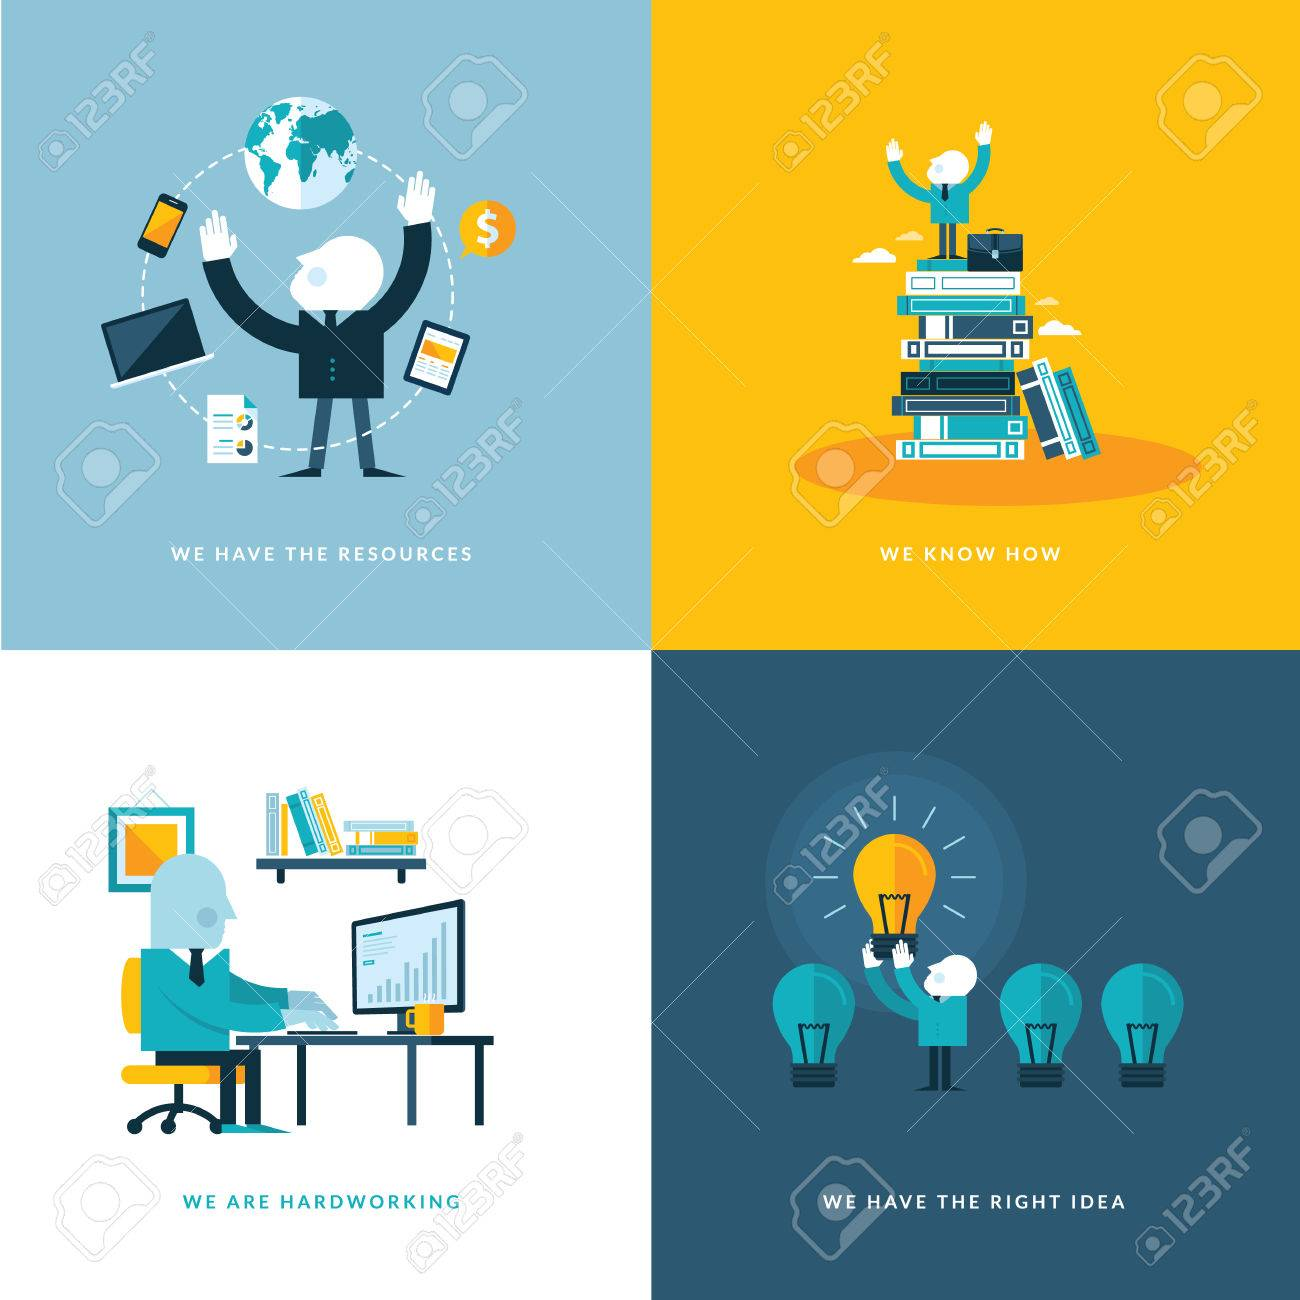 skill set stock photos pictures royalty skill set images skill set set of flat design concept icons for business icons for company resources